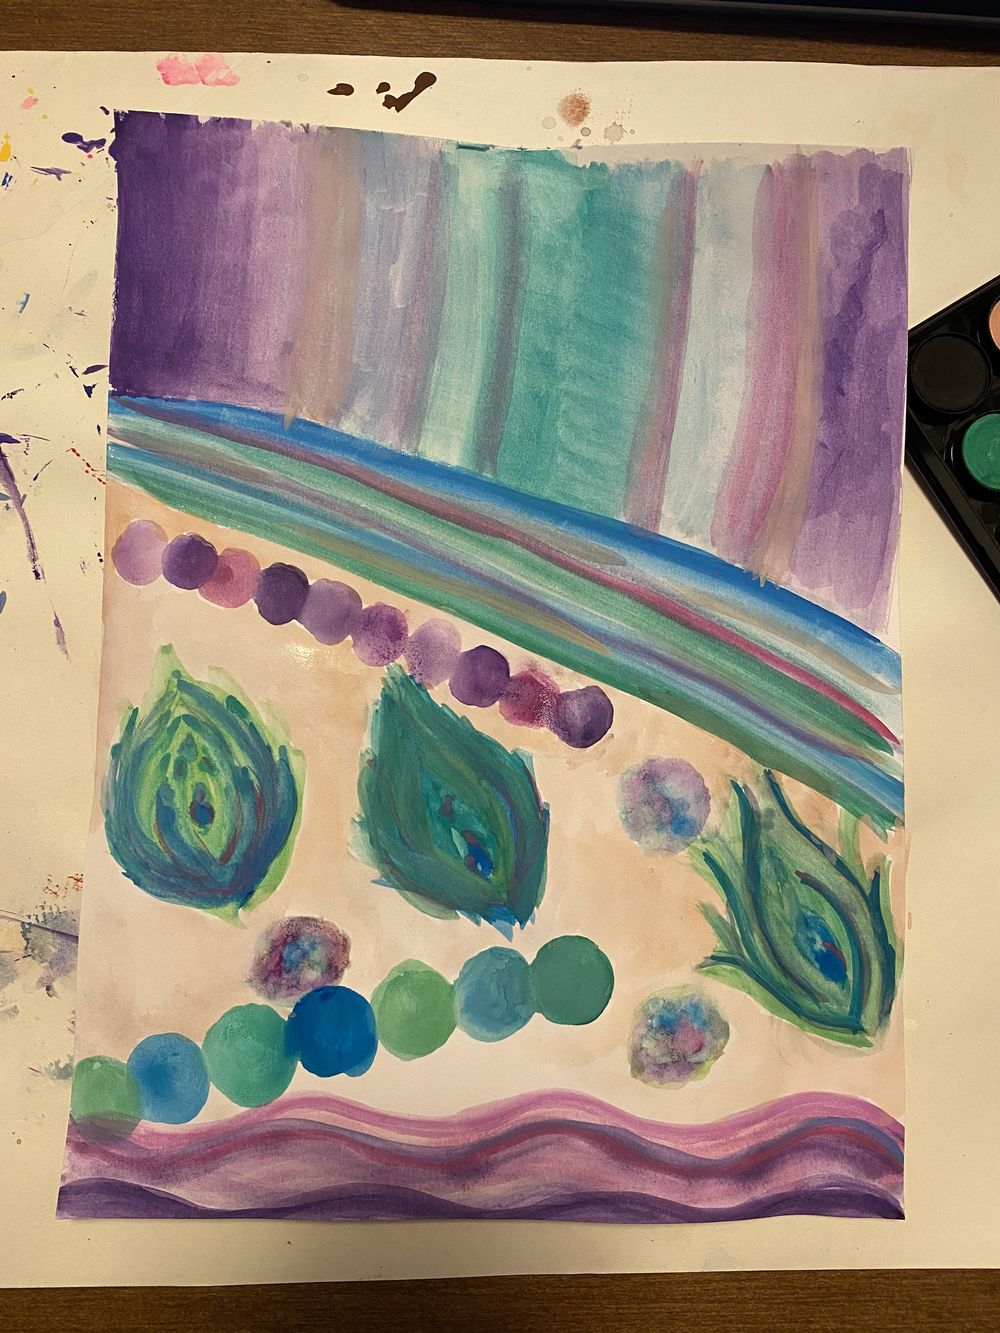 Mood painting - image 1 - student project